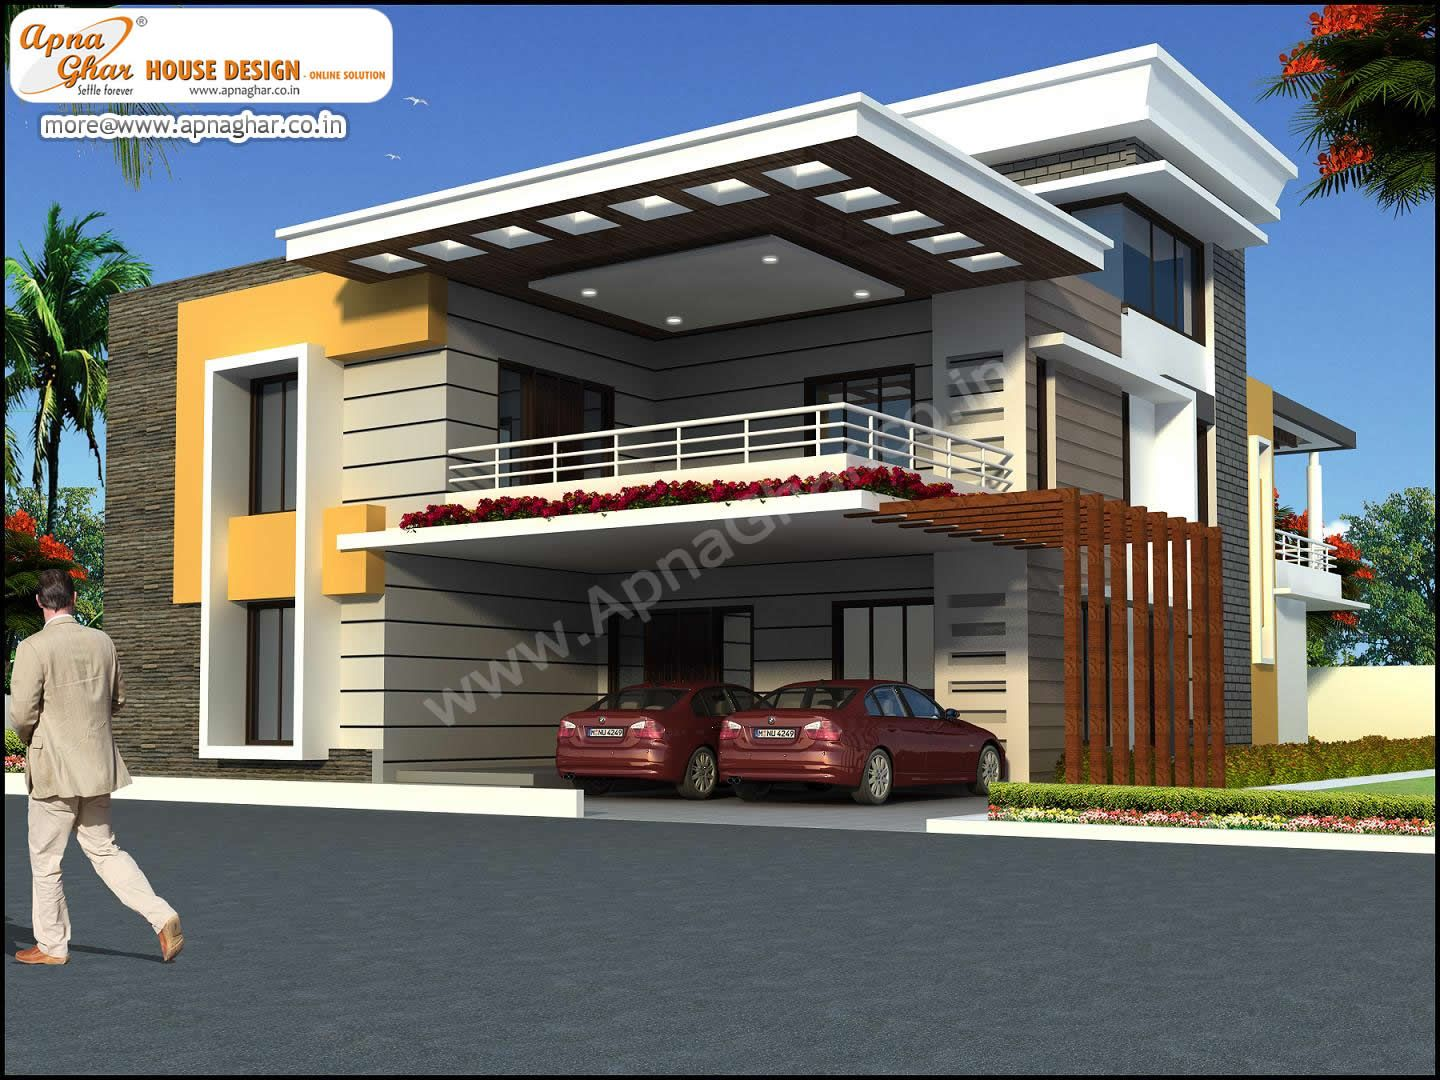 5 bedroom duplex 2 floors house design area 450m2 18m